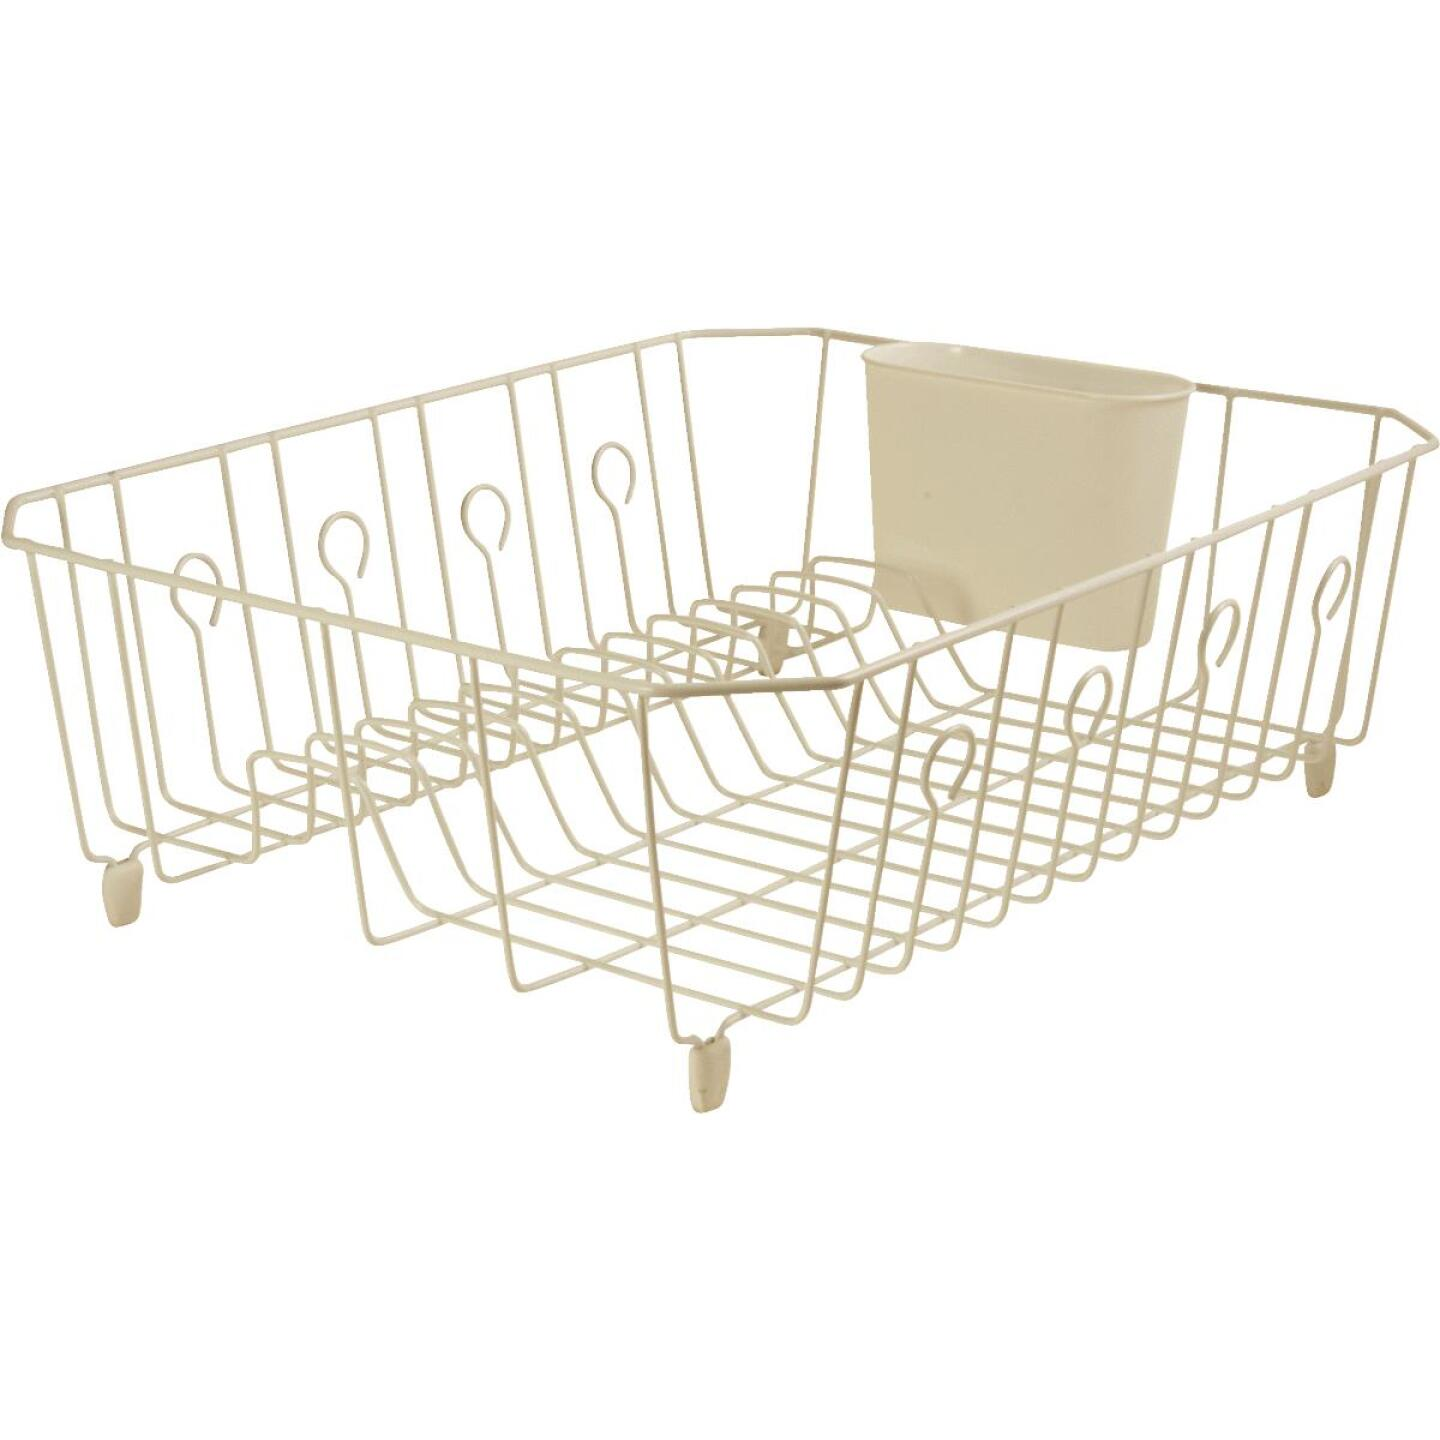 Rubbermaid 13.81 In. x 17.62 In. Bisque Wire Sink Dish Drainer Image 1